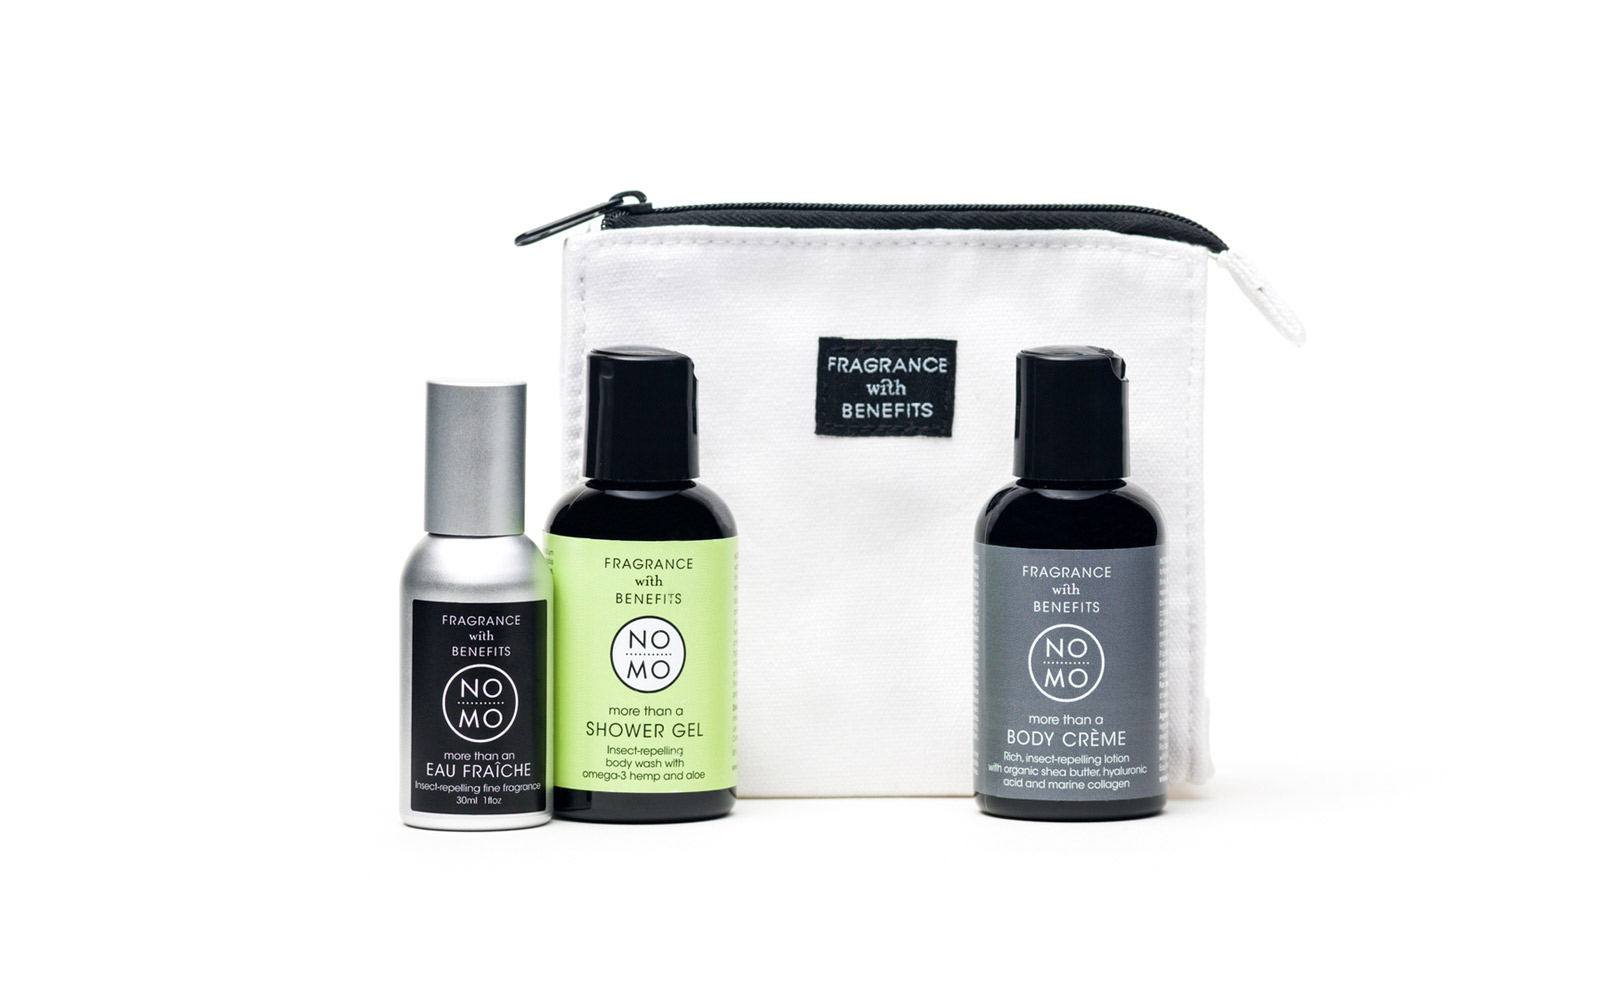 insect repellent travel set